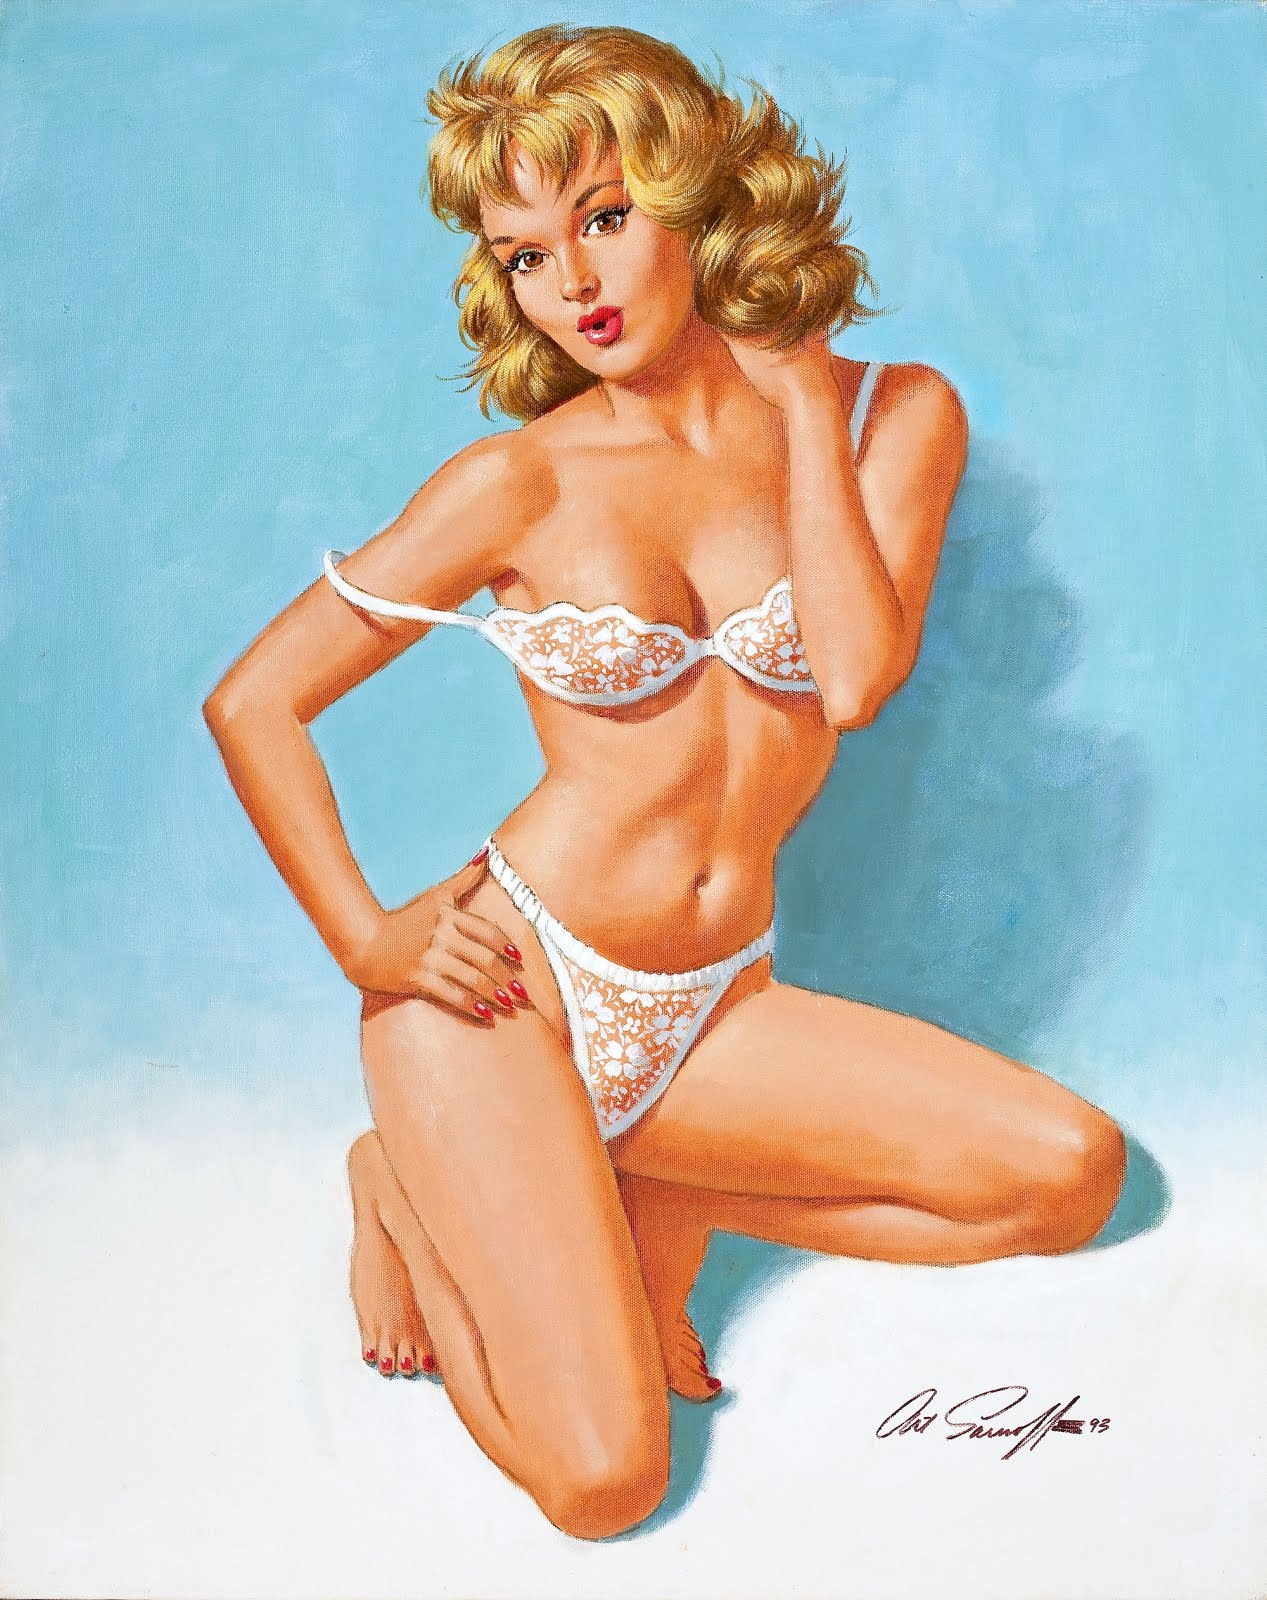 Pin By Berserk Vikings On Makeup Ideas: Classic Pinups: Arthur Sarnoff Pinups